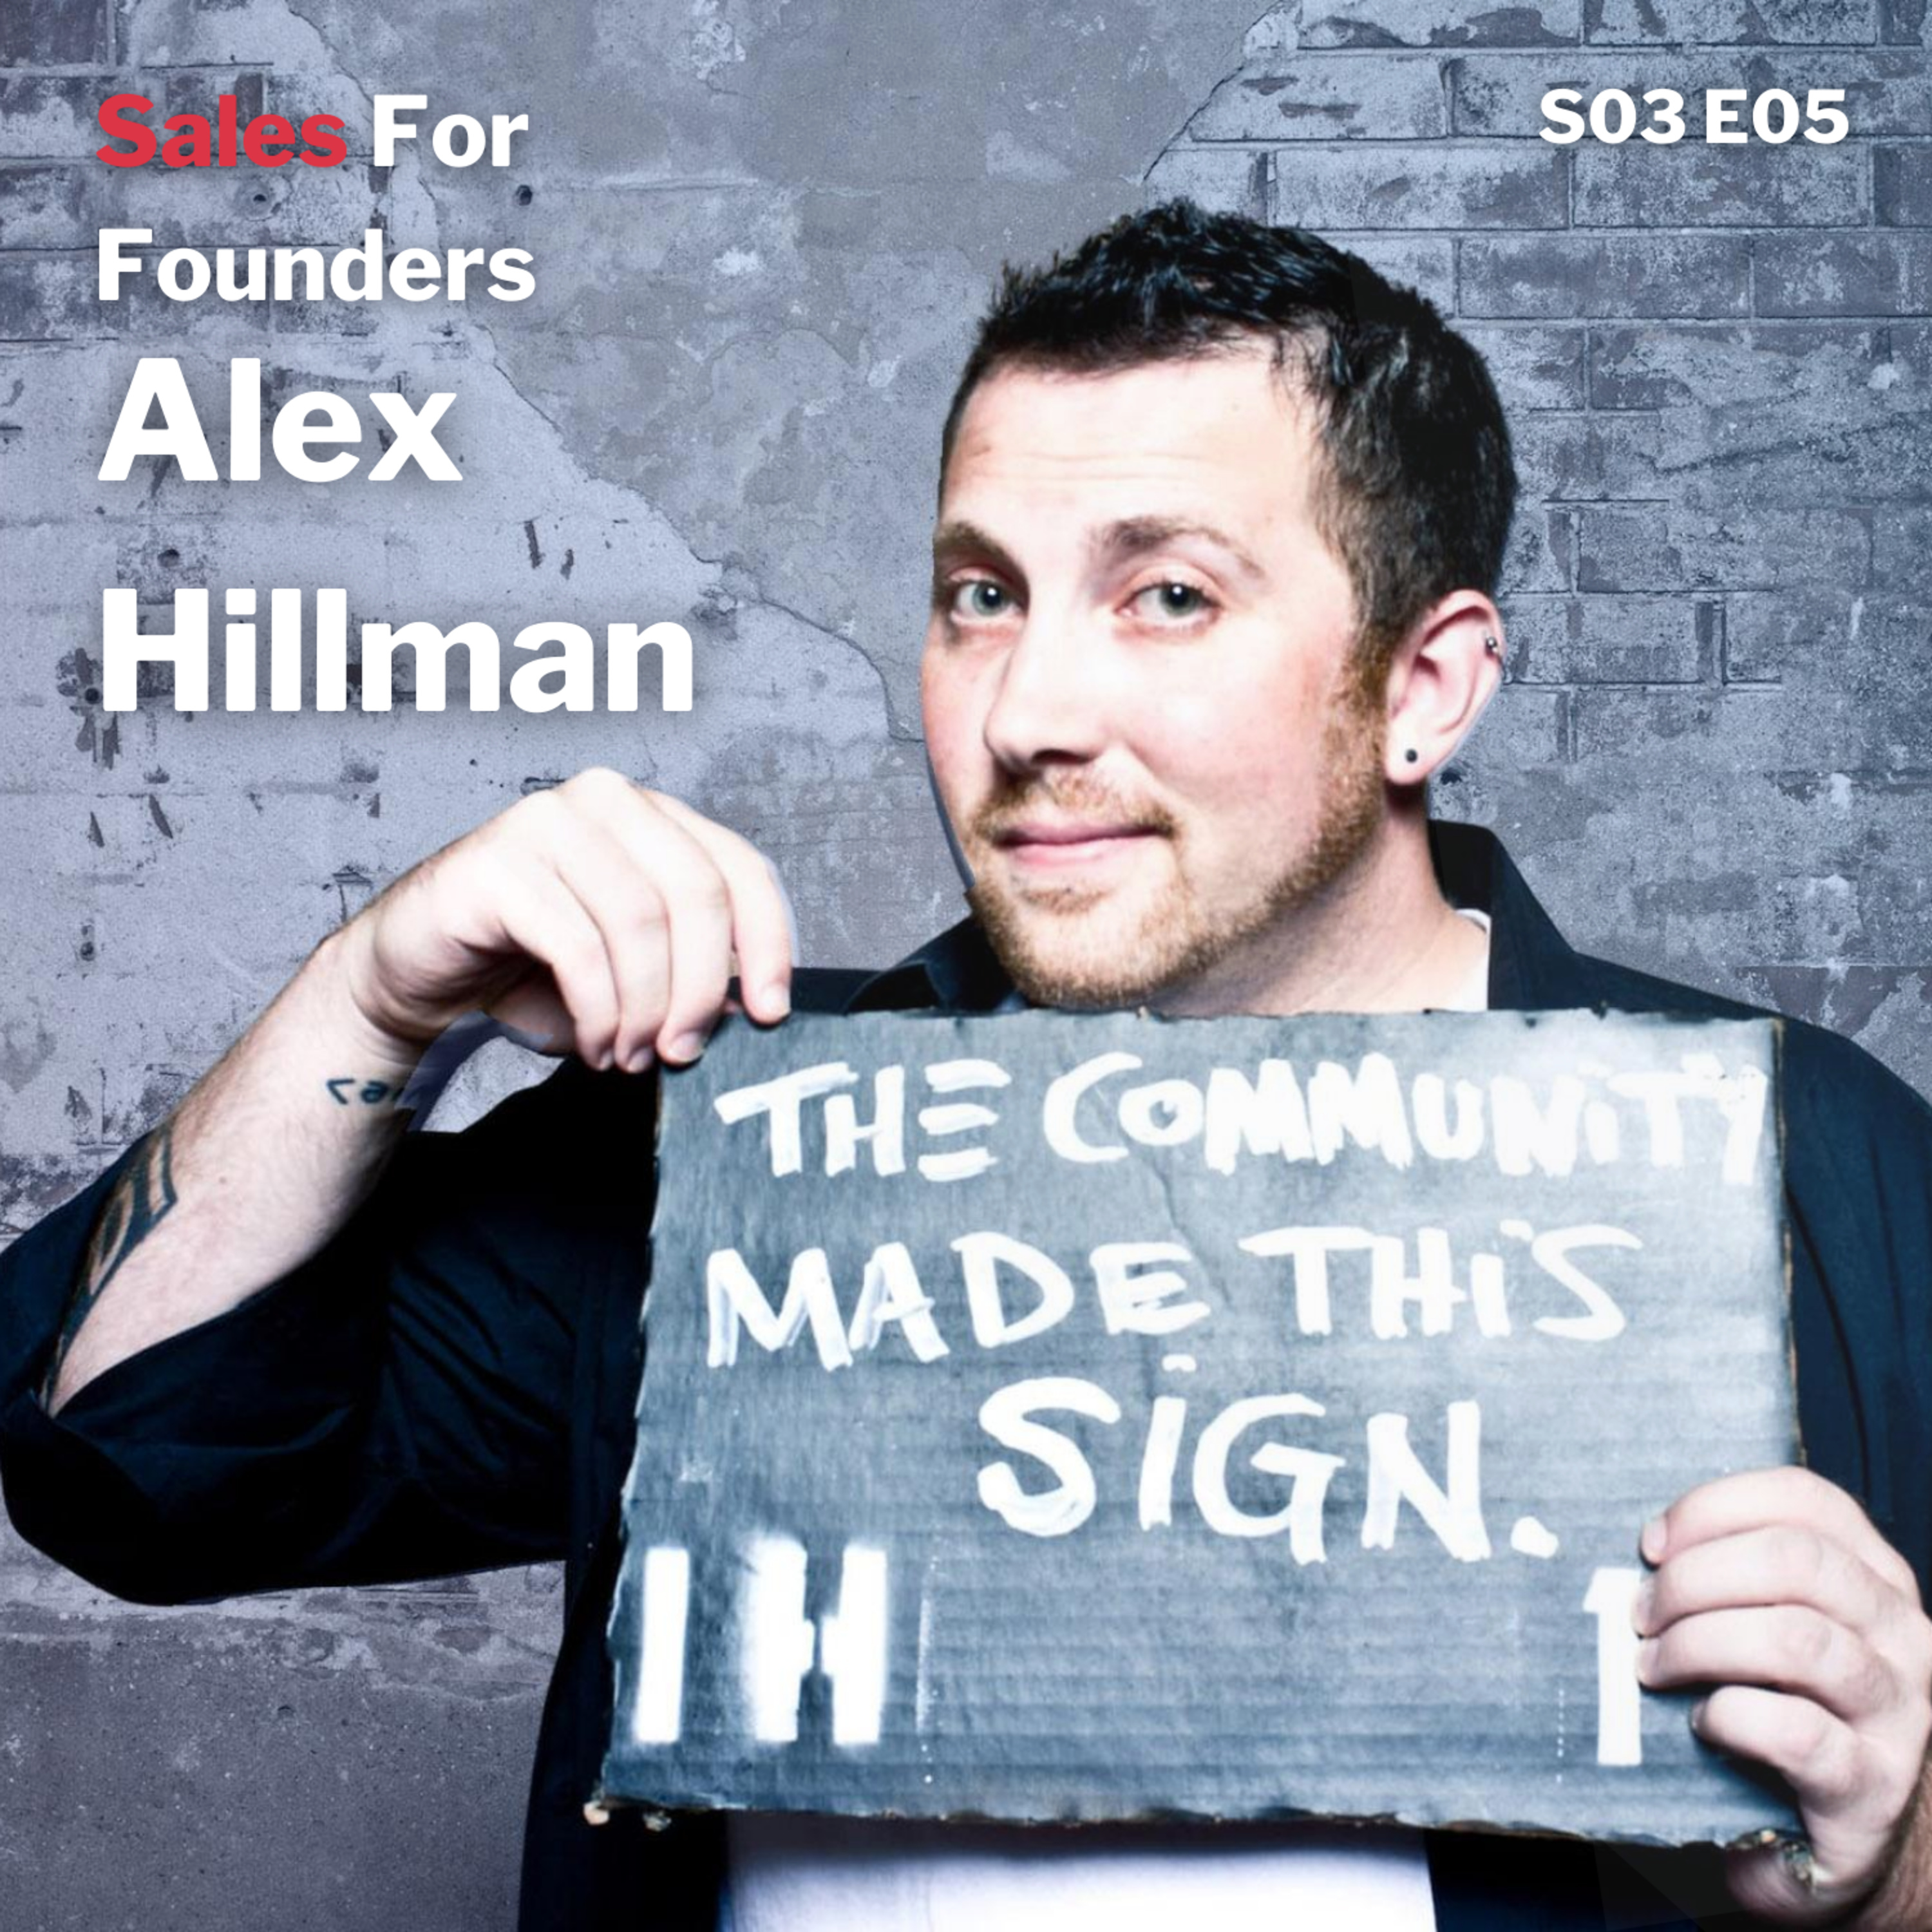 3 ideas to build your own business that lasts - with Alex Hillman, author of The Tiny MBA